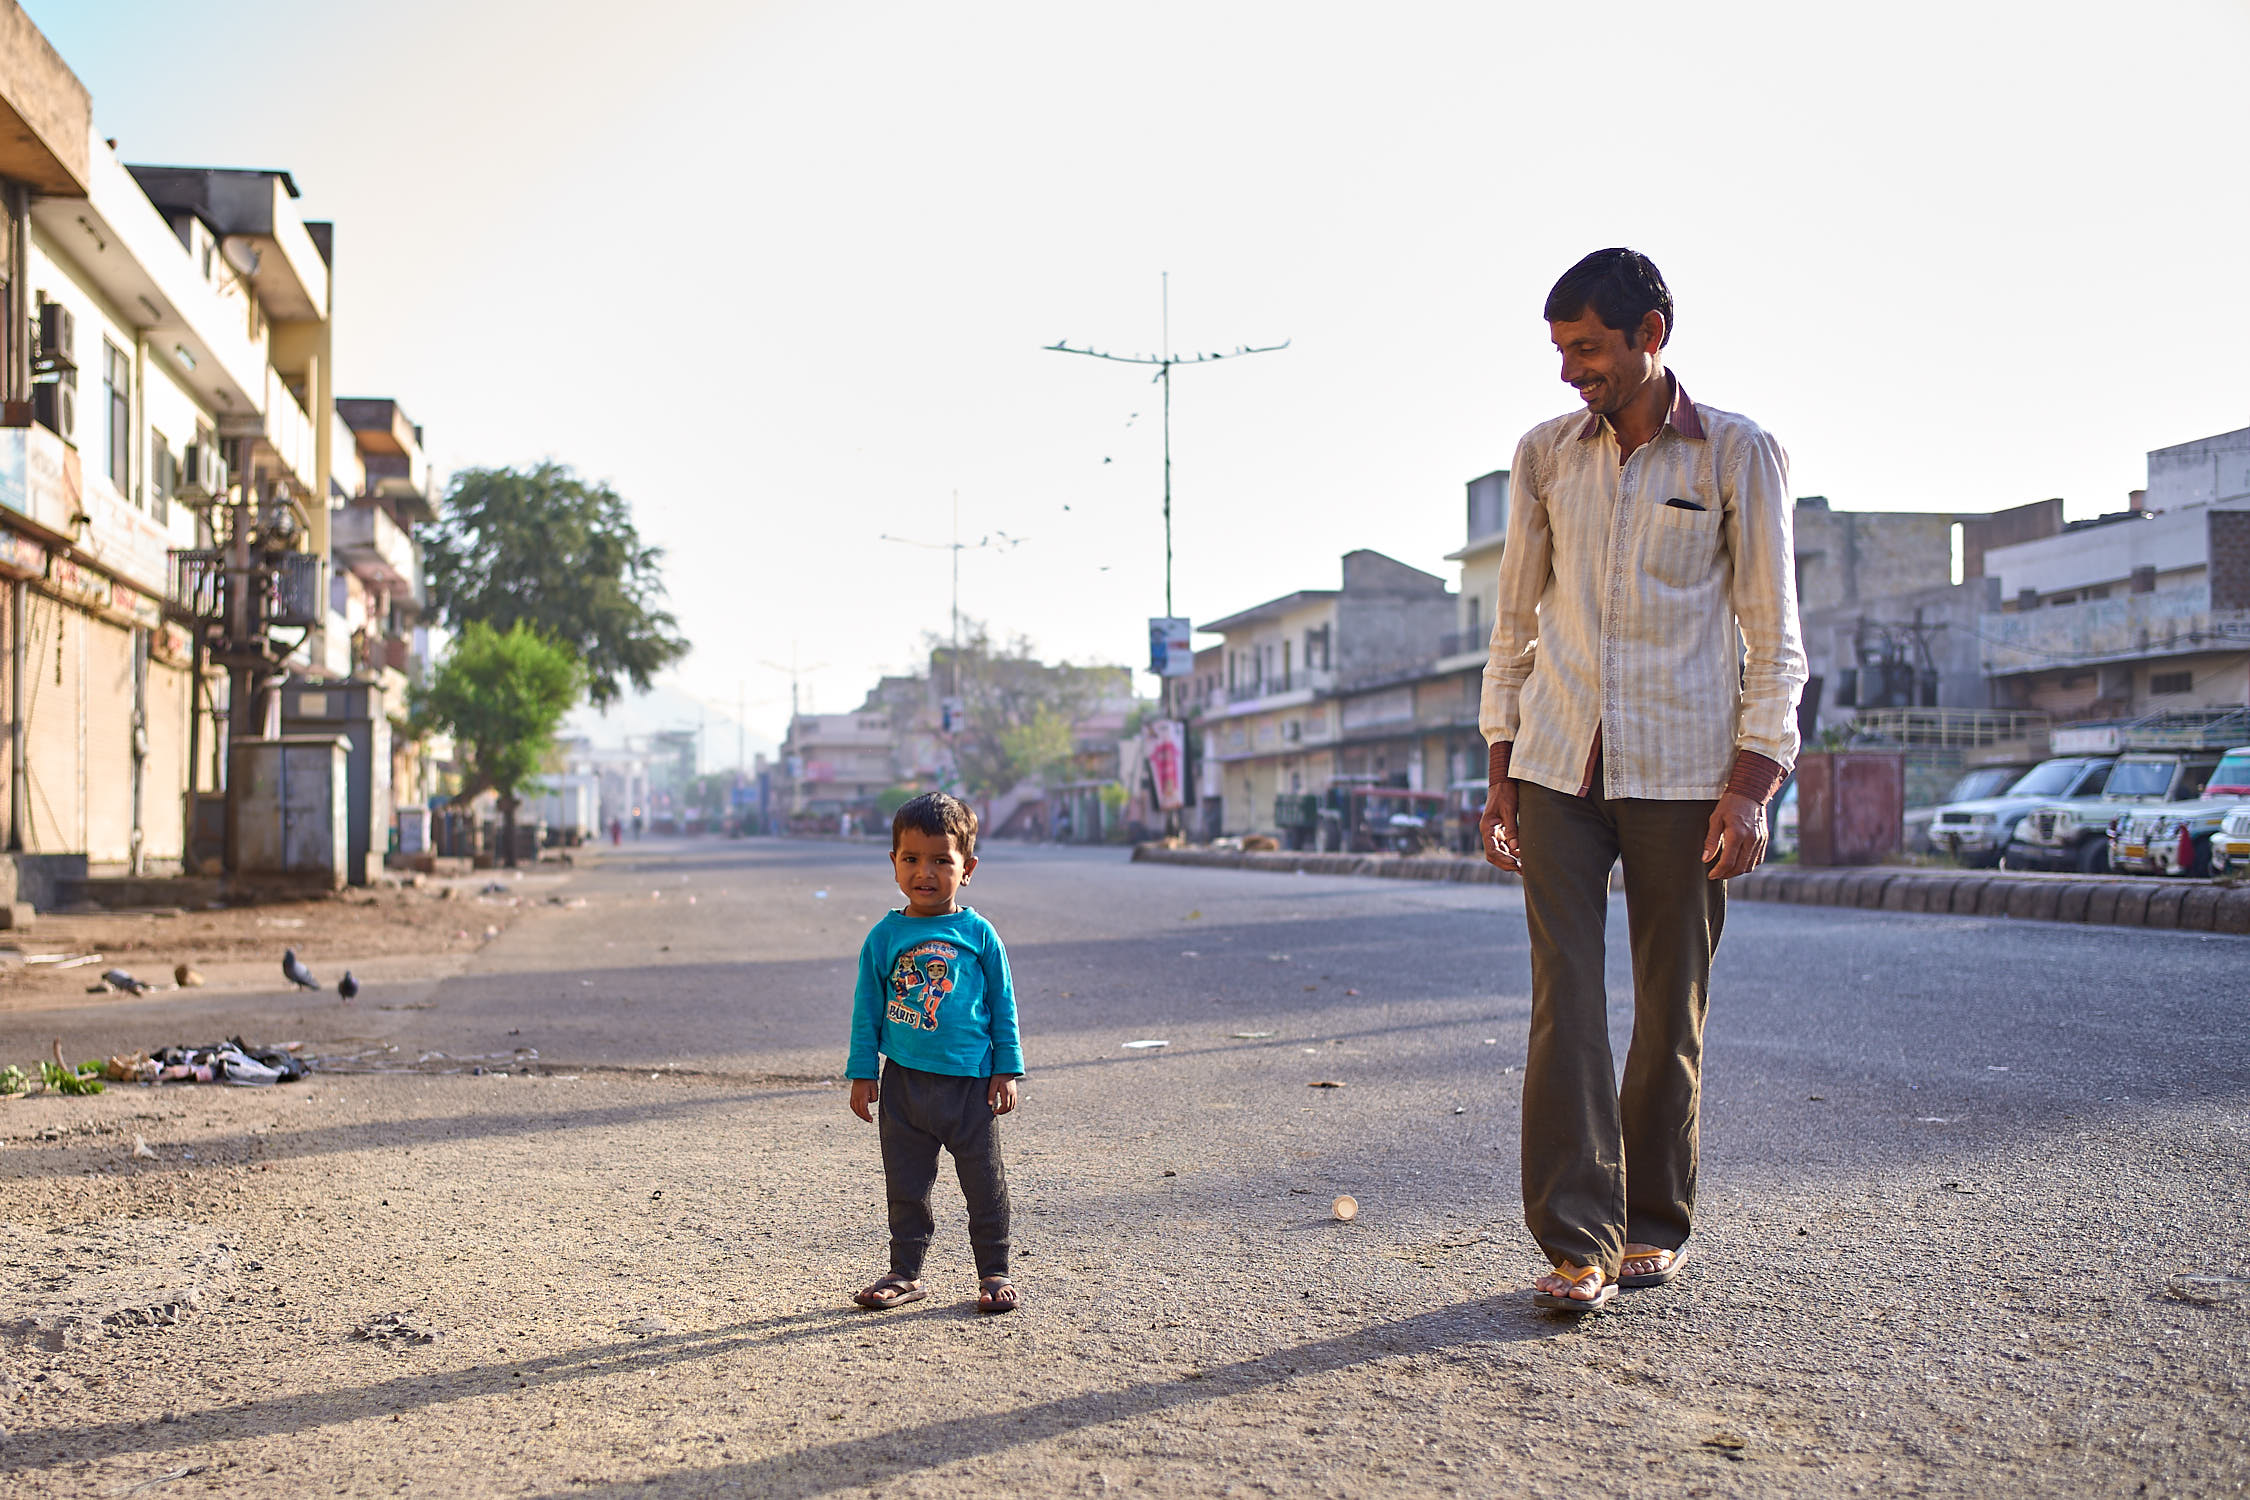 Morning sunrise with a kid, Jaipur India